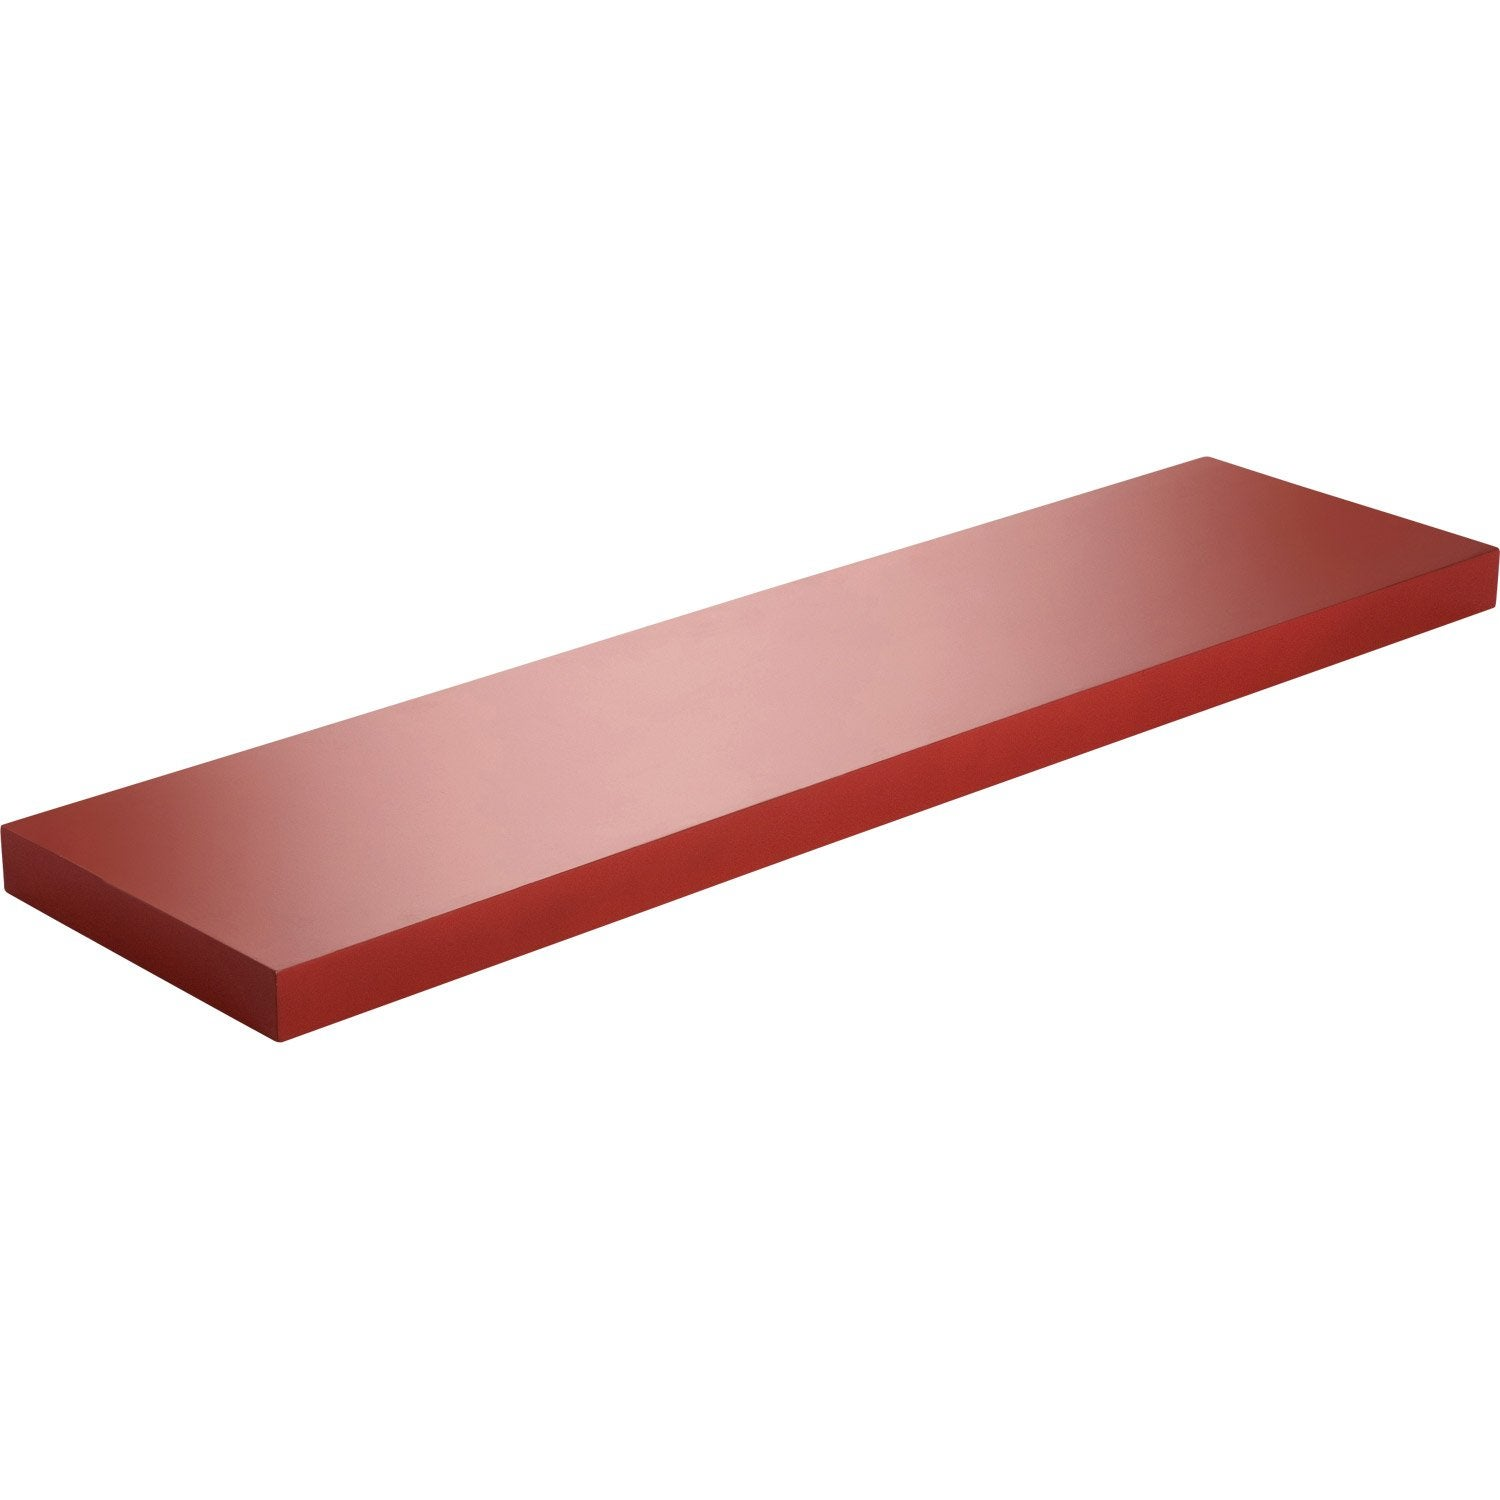 Etag re murale rouge rouge n 3 spaceo l 90 x p 23 5 cm mm leroy merlin - Tablette murale rouge ...